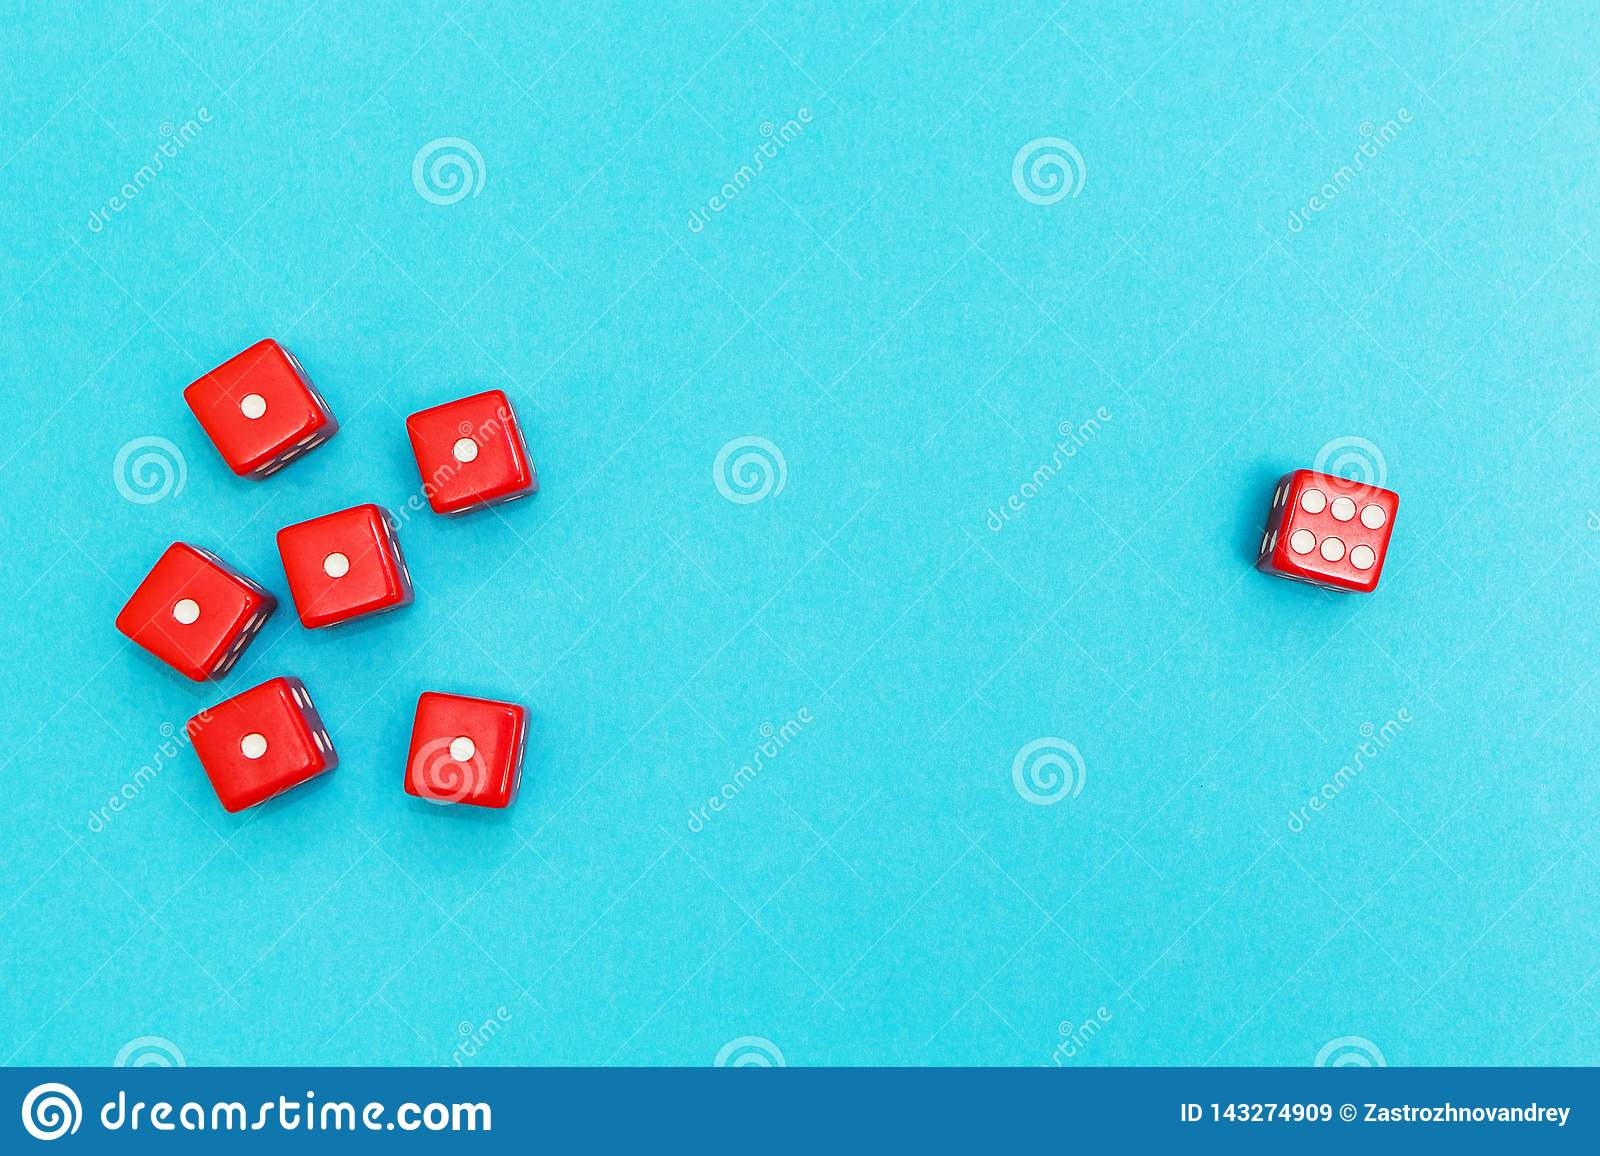 Red dice on a blue background, success and failure